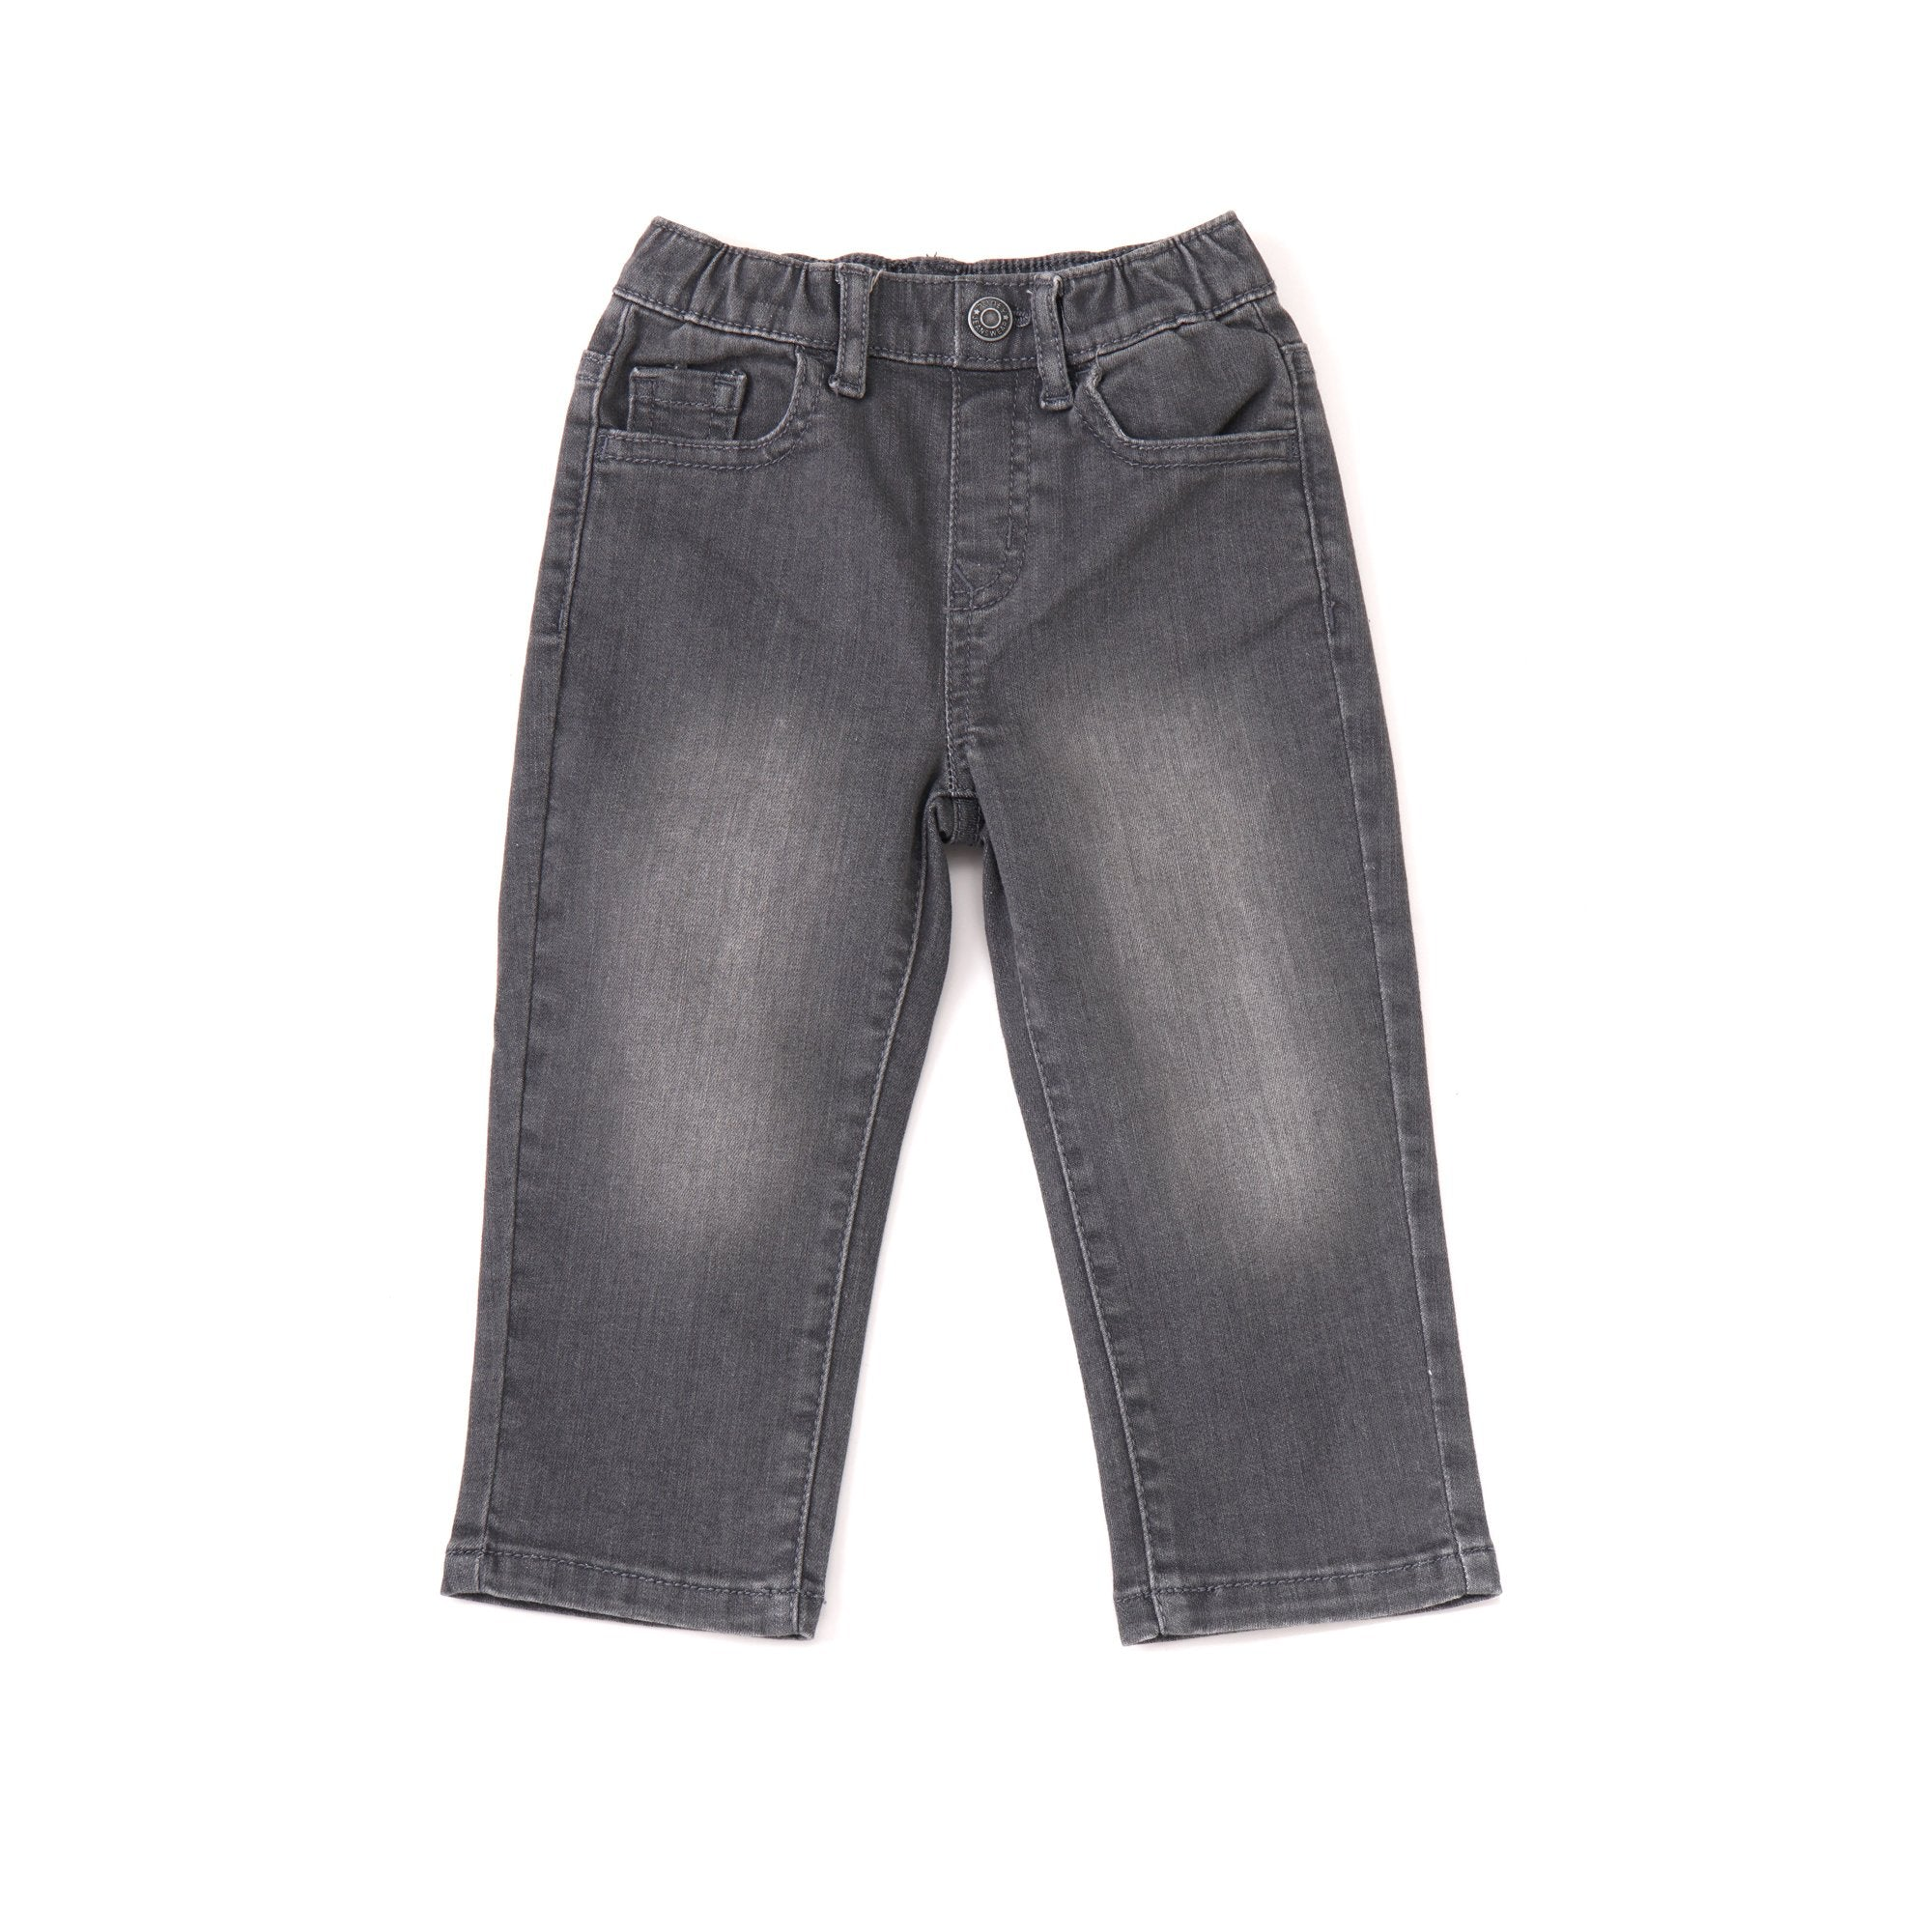 Poney Boys Jeans 7837 (6mths-12yrs)